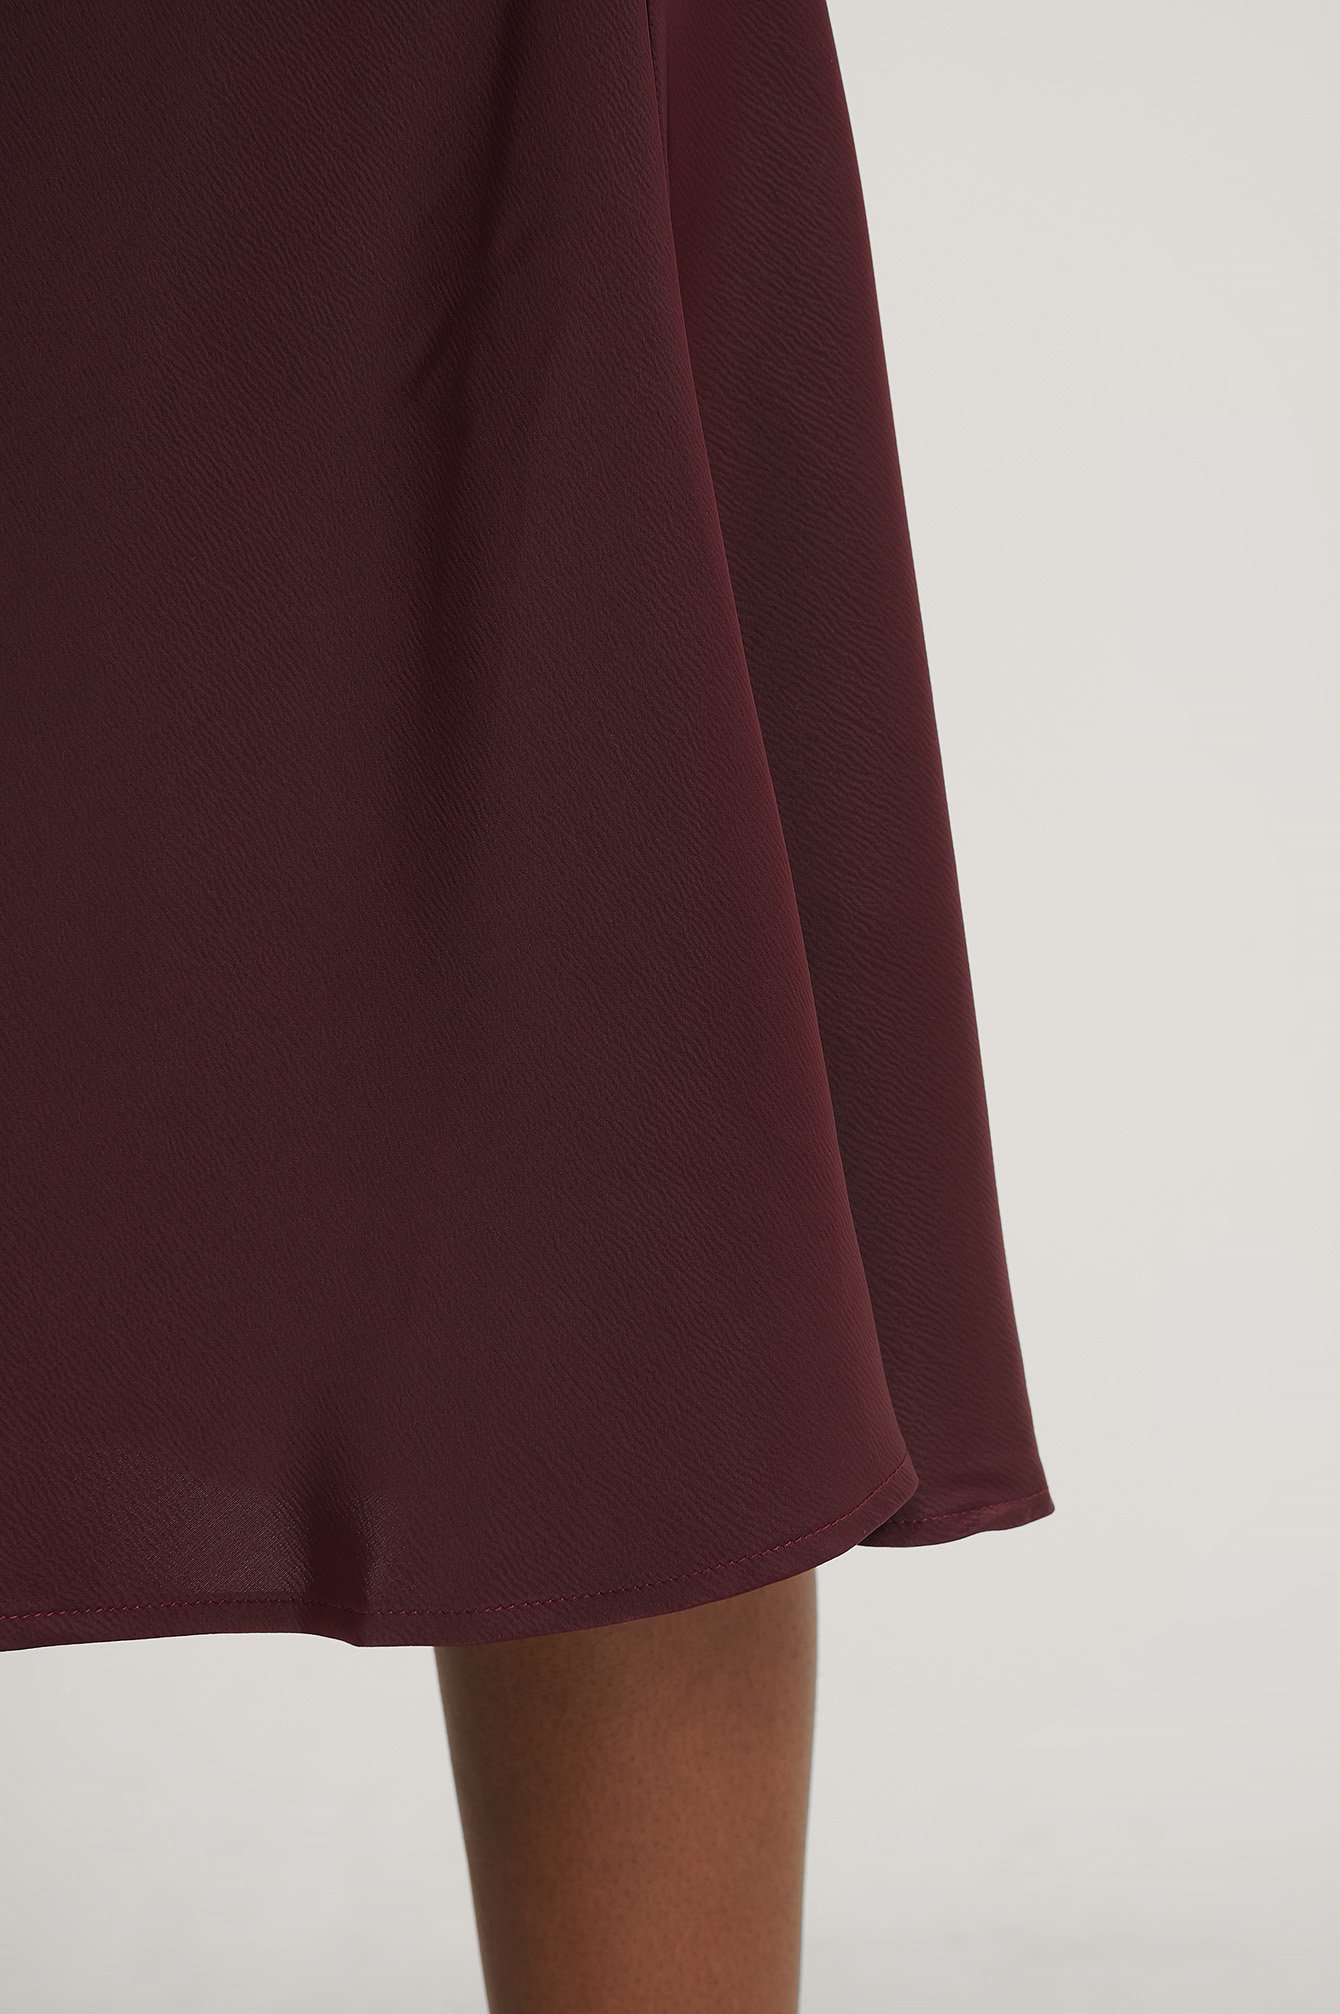 Burgundy Satin Skirt